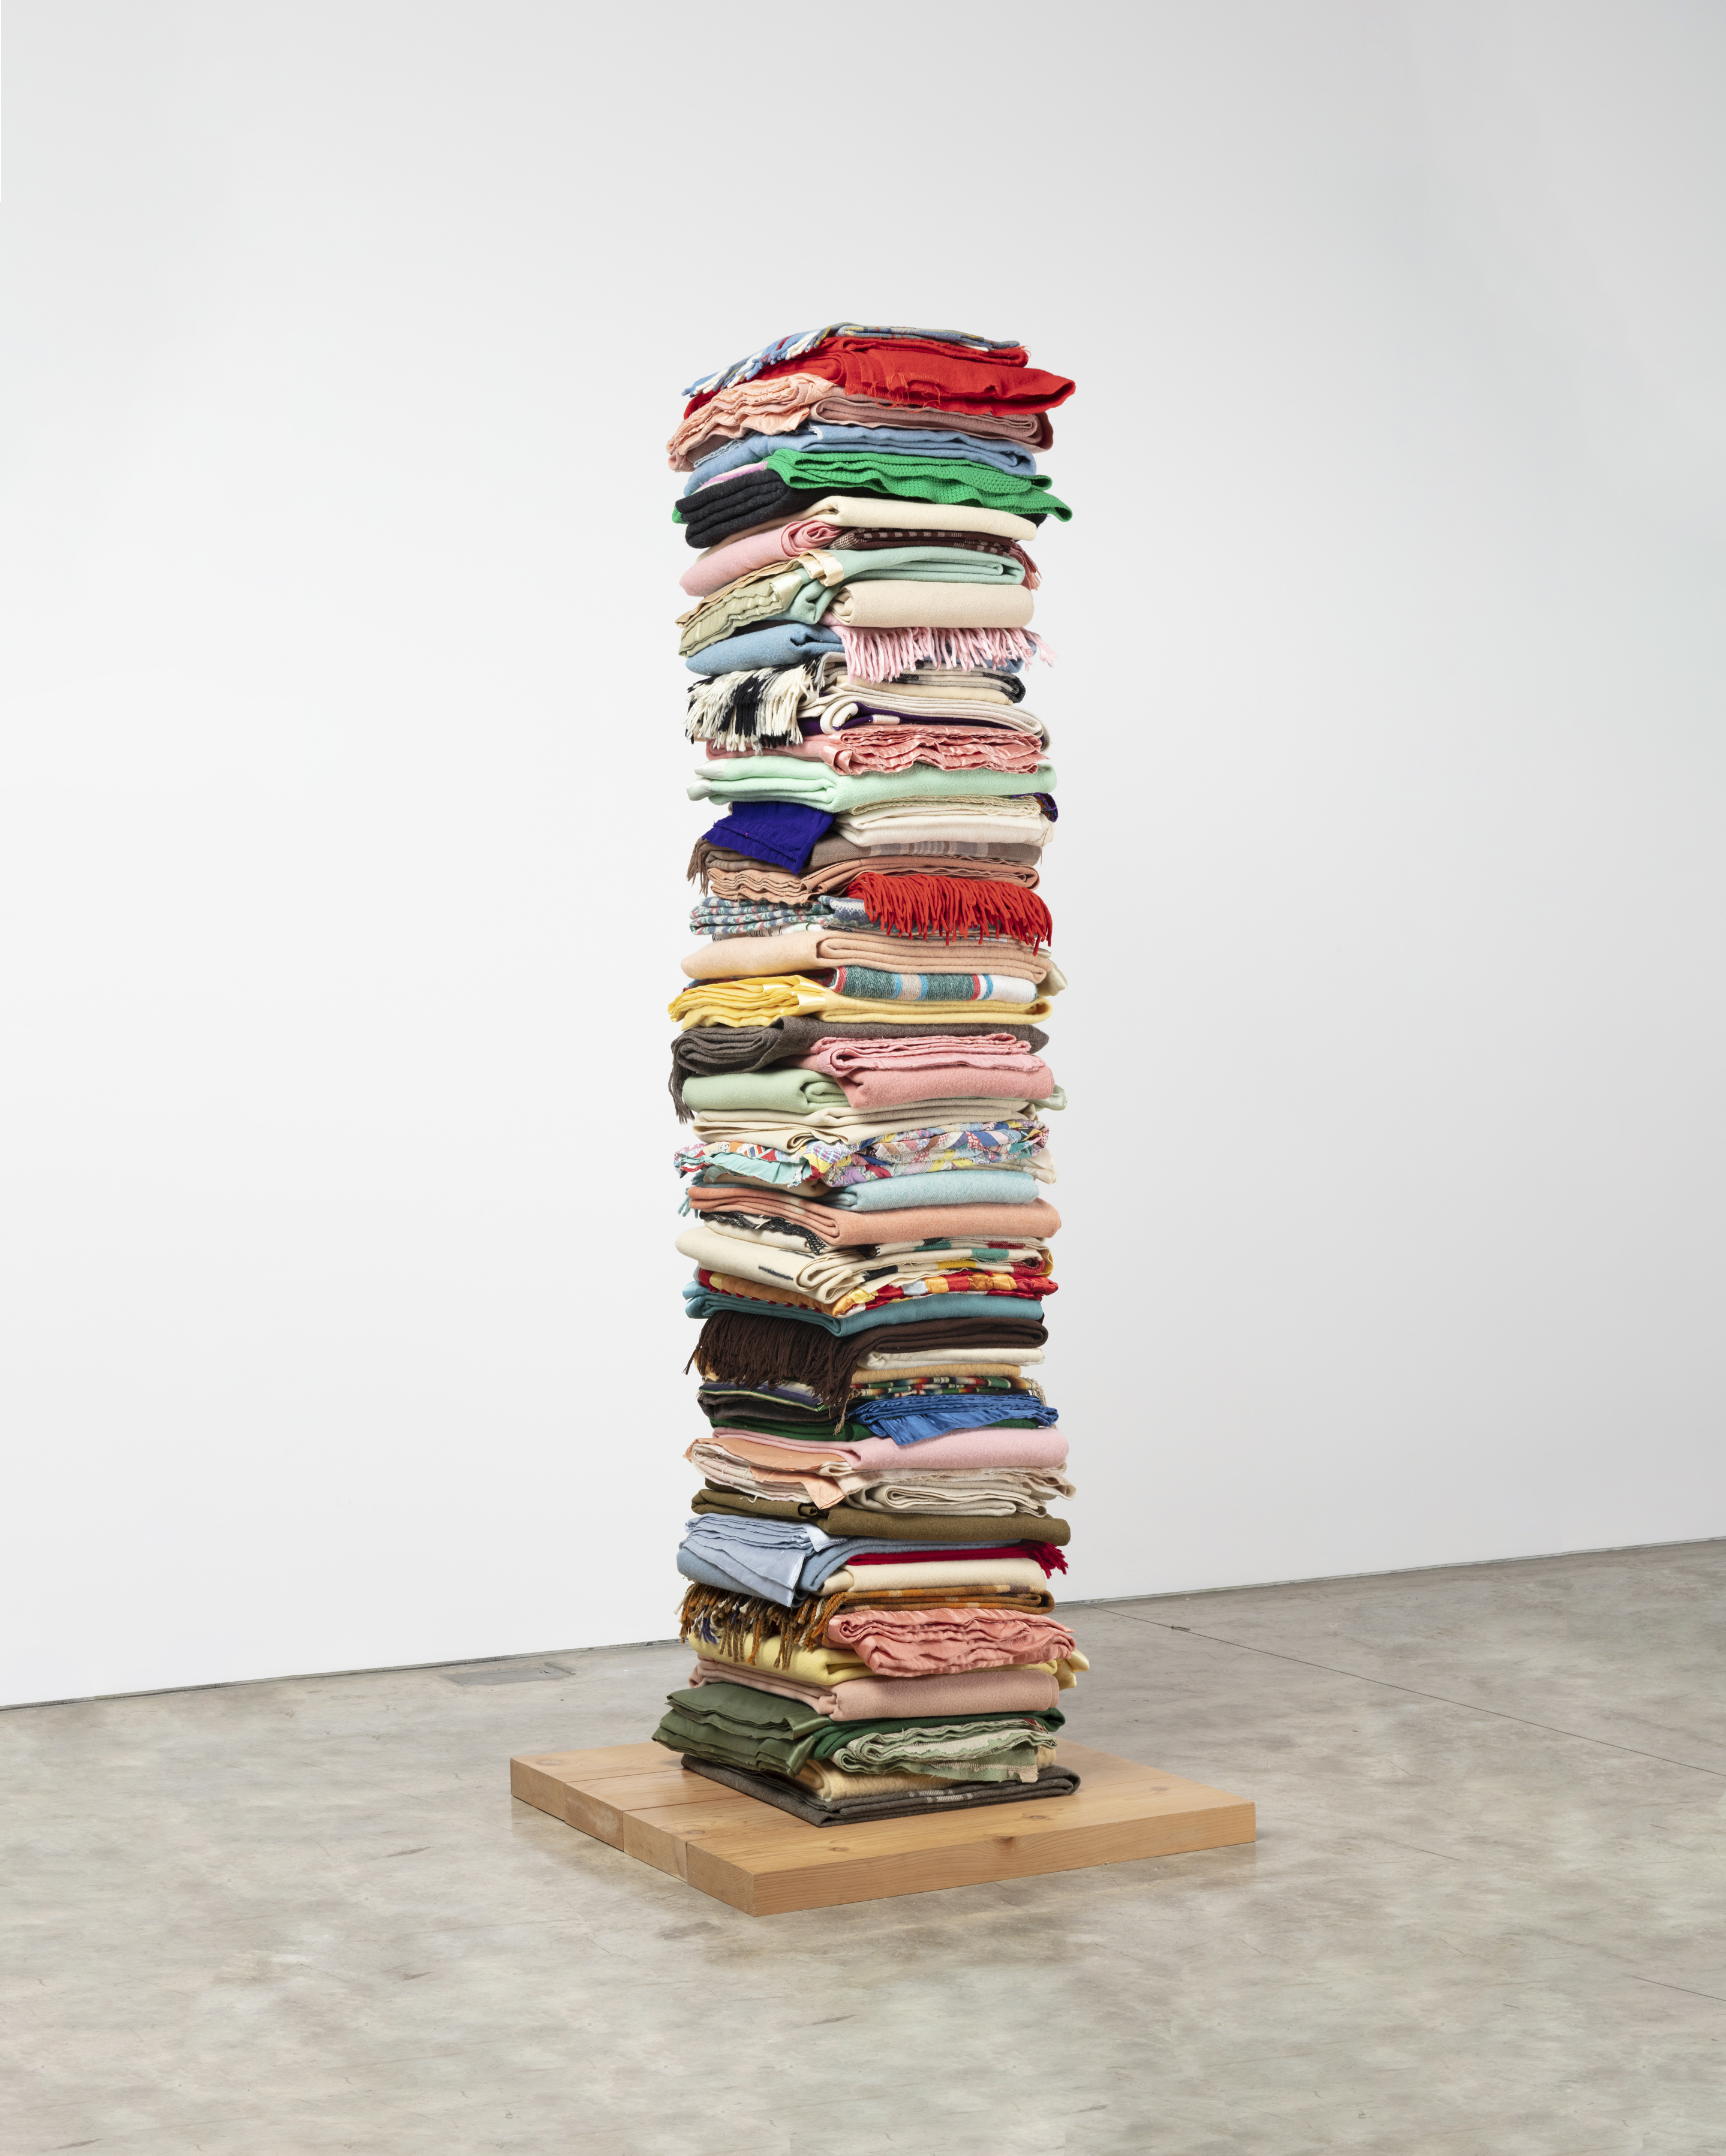 2016 Folded blankets, steel poles, wooden base 102 x 33 1/2 x 34 inches (259.1 x 85.1 x 86.4 cm) - Marc Straus Gallery